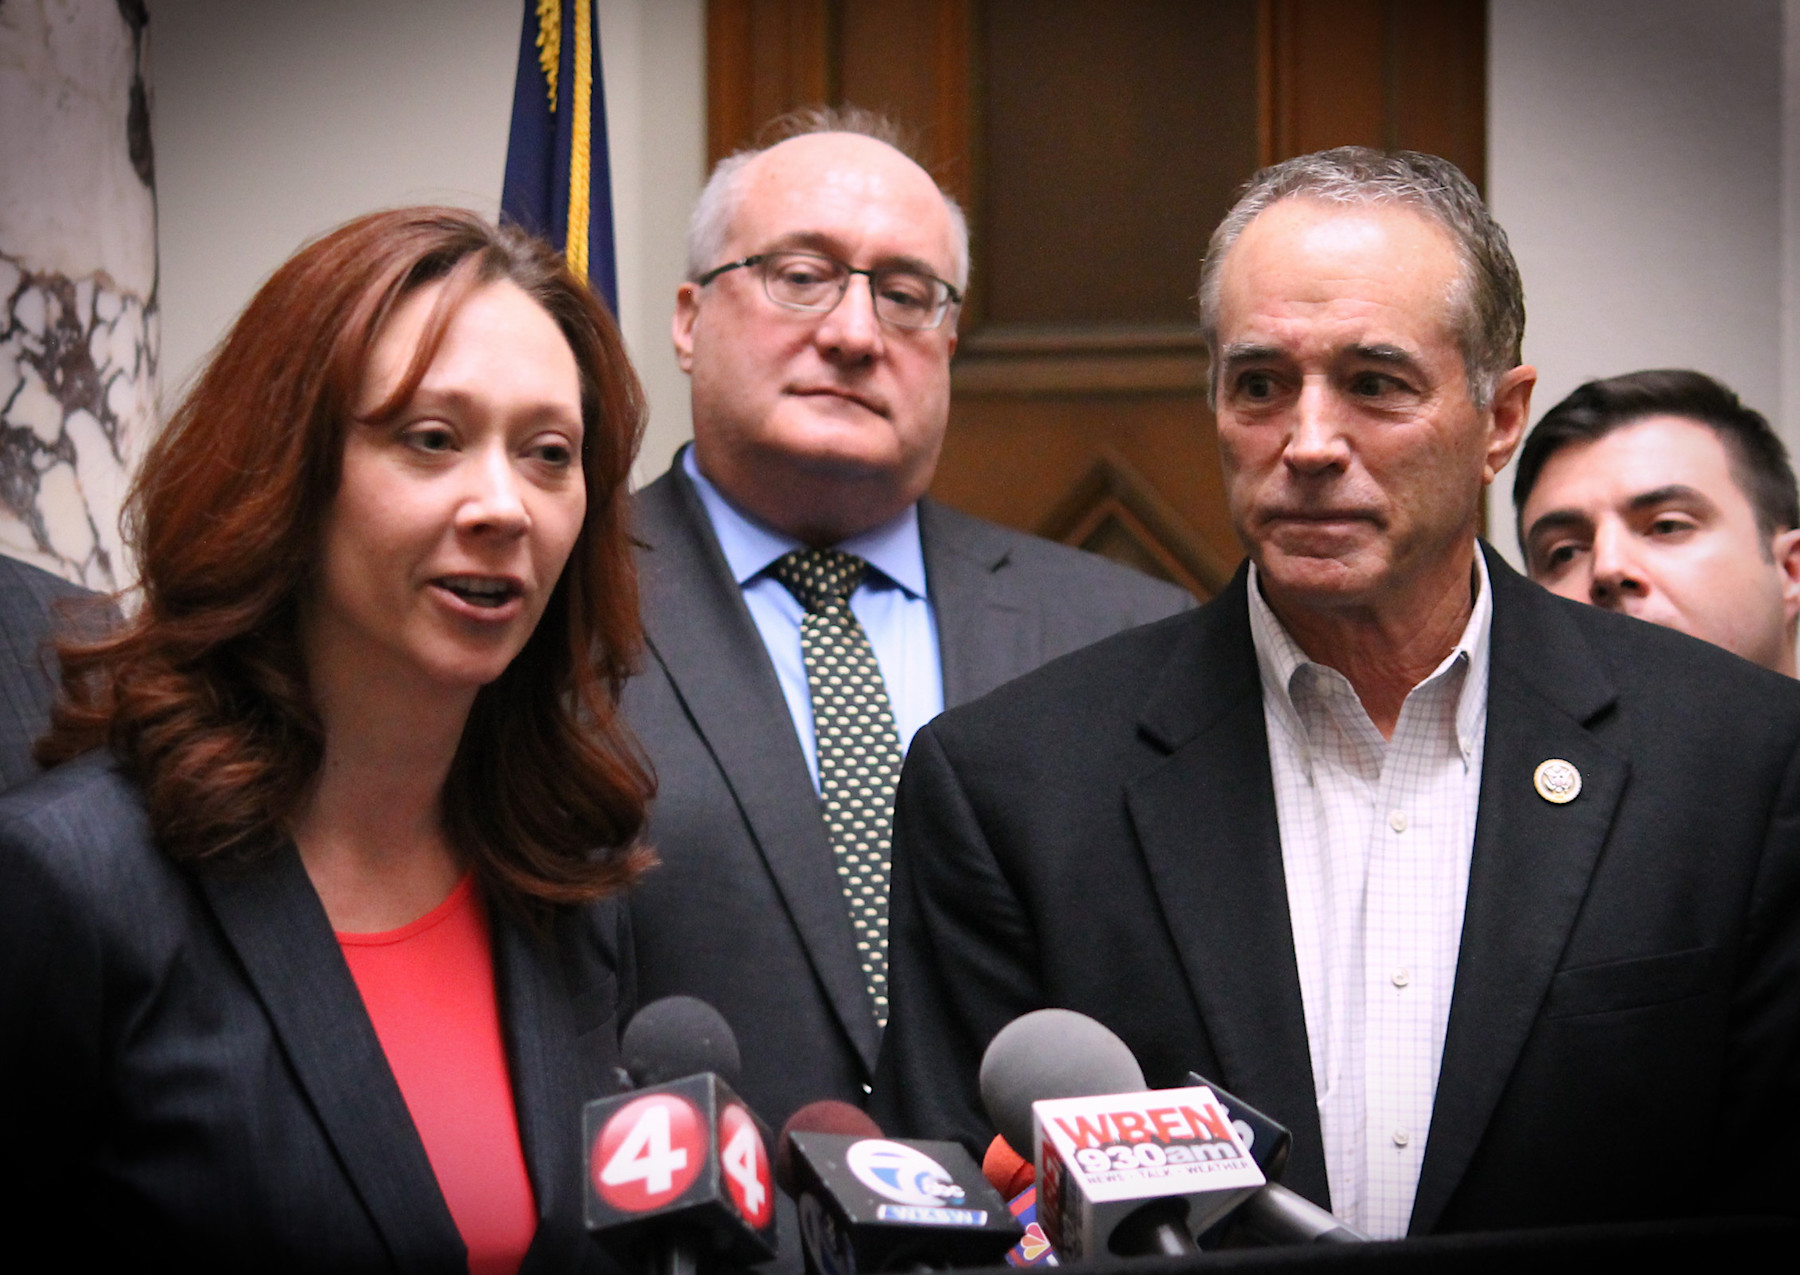 Legislator Becky Wydysh speaks at a press conference with U.S. Rep. Chris Collins, R-Clarence, last month.